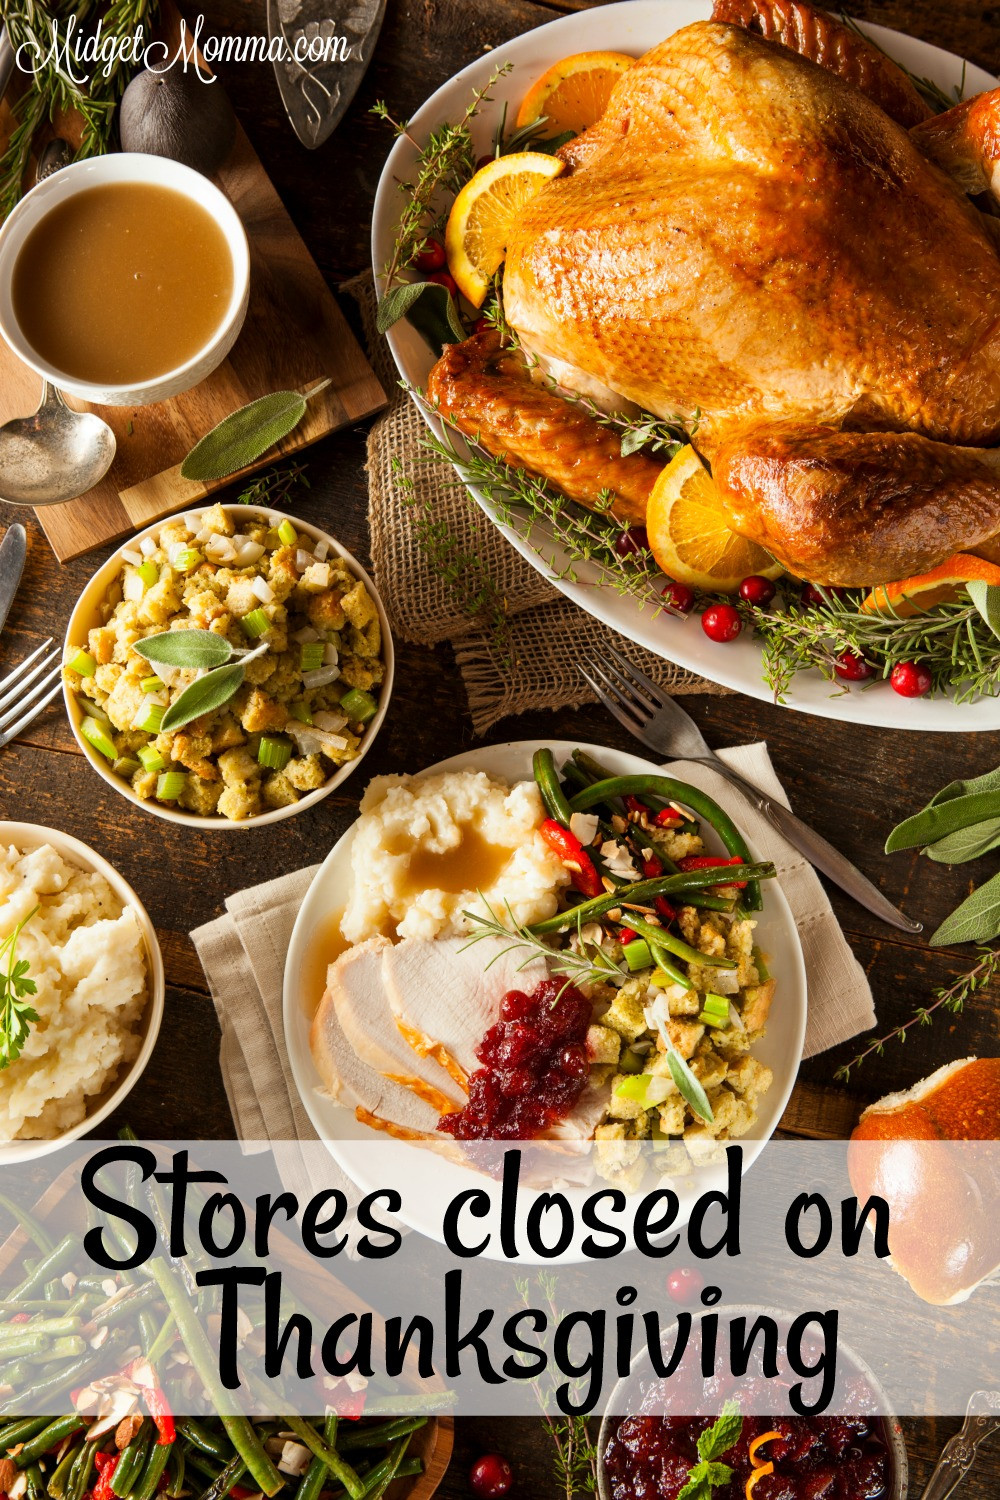 Pre Cooked Thanksgiving Dinner 2017  Stores closed on Thanksgiving 2017 • Mid Momma